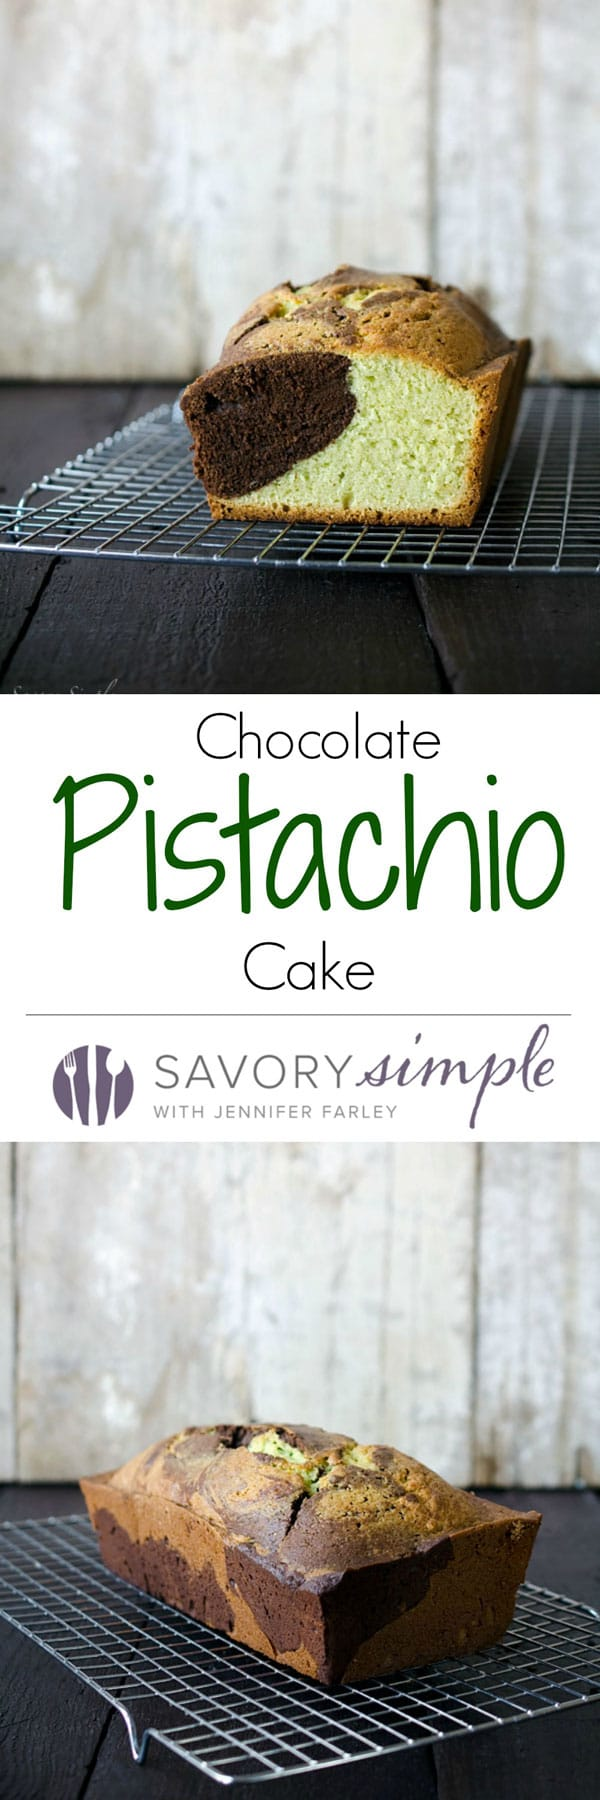 "This chocolate pistachio cake is a dense, moist treat that's adapted from my grandmother's ""famous"" recipe. Get the easy-to-follow recipe from SavorySimple.net"